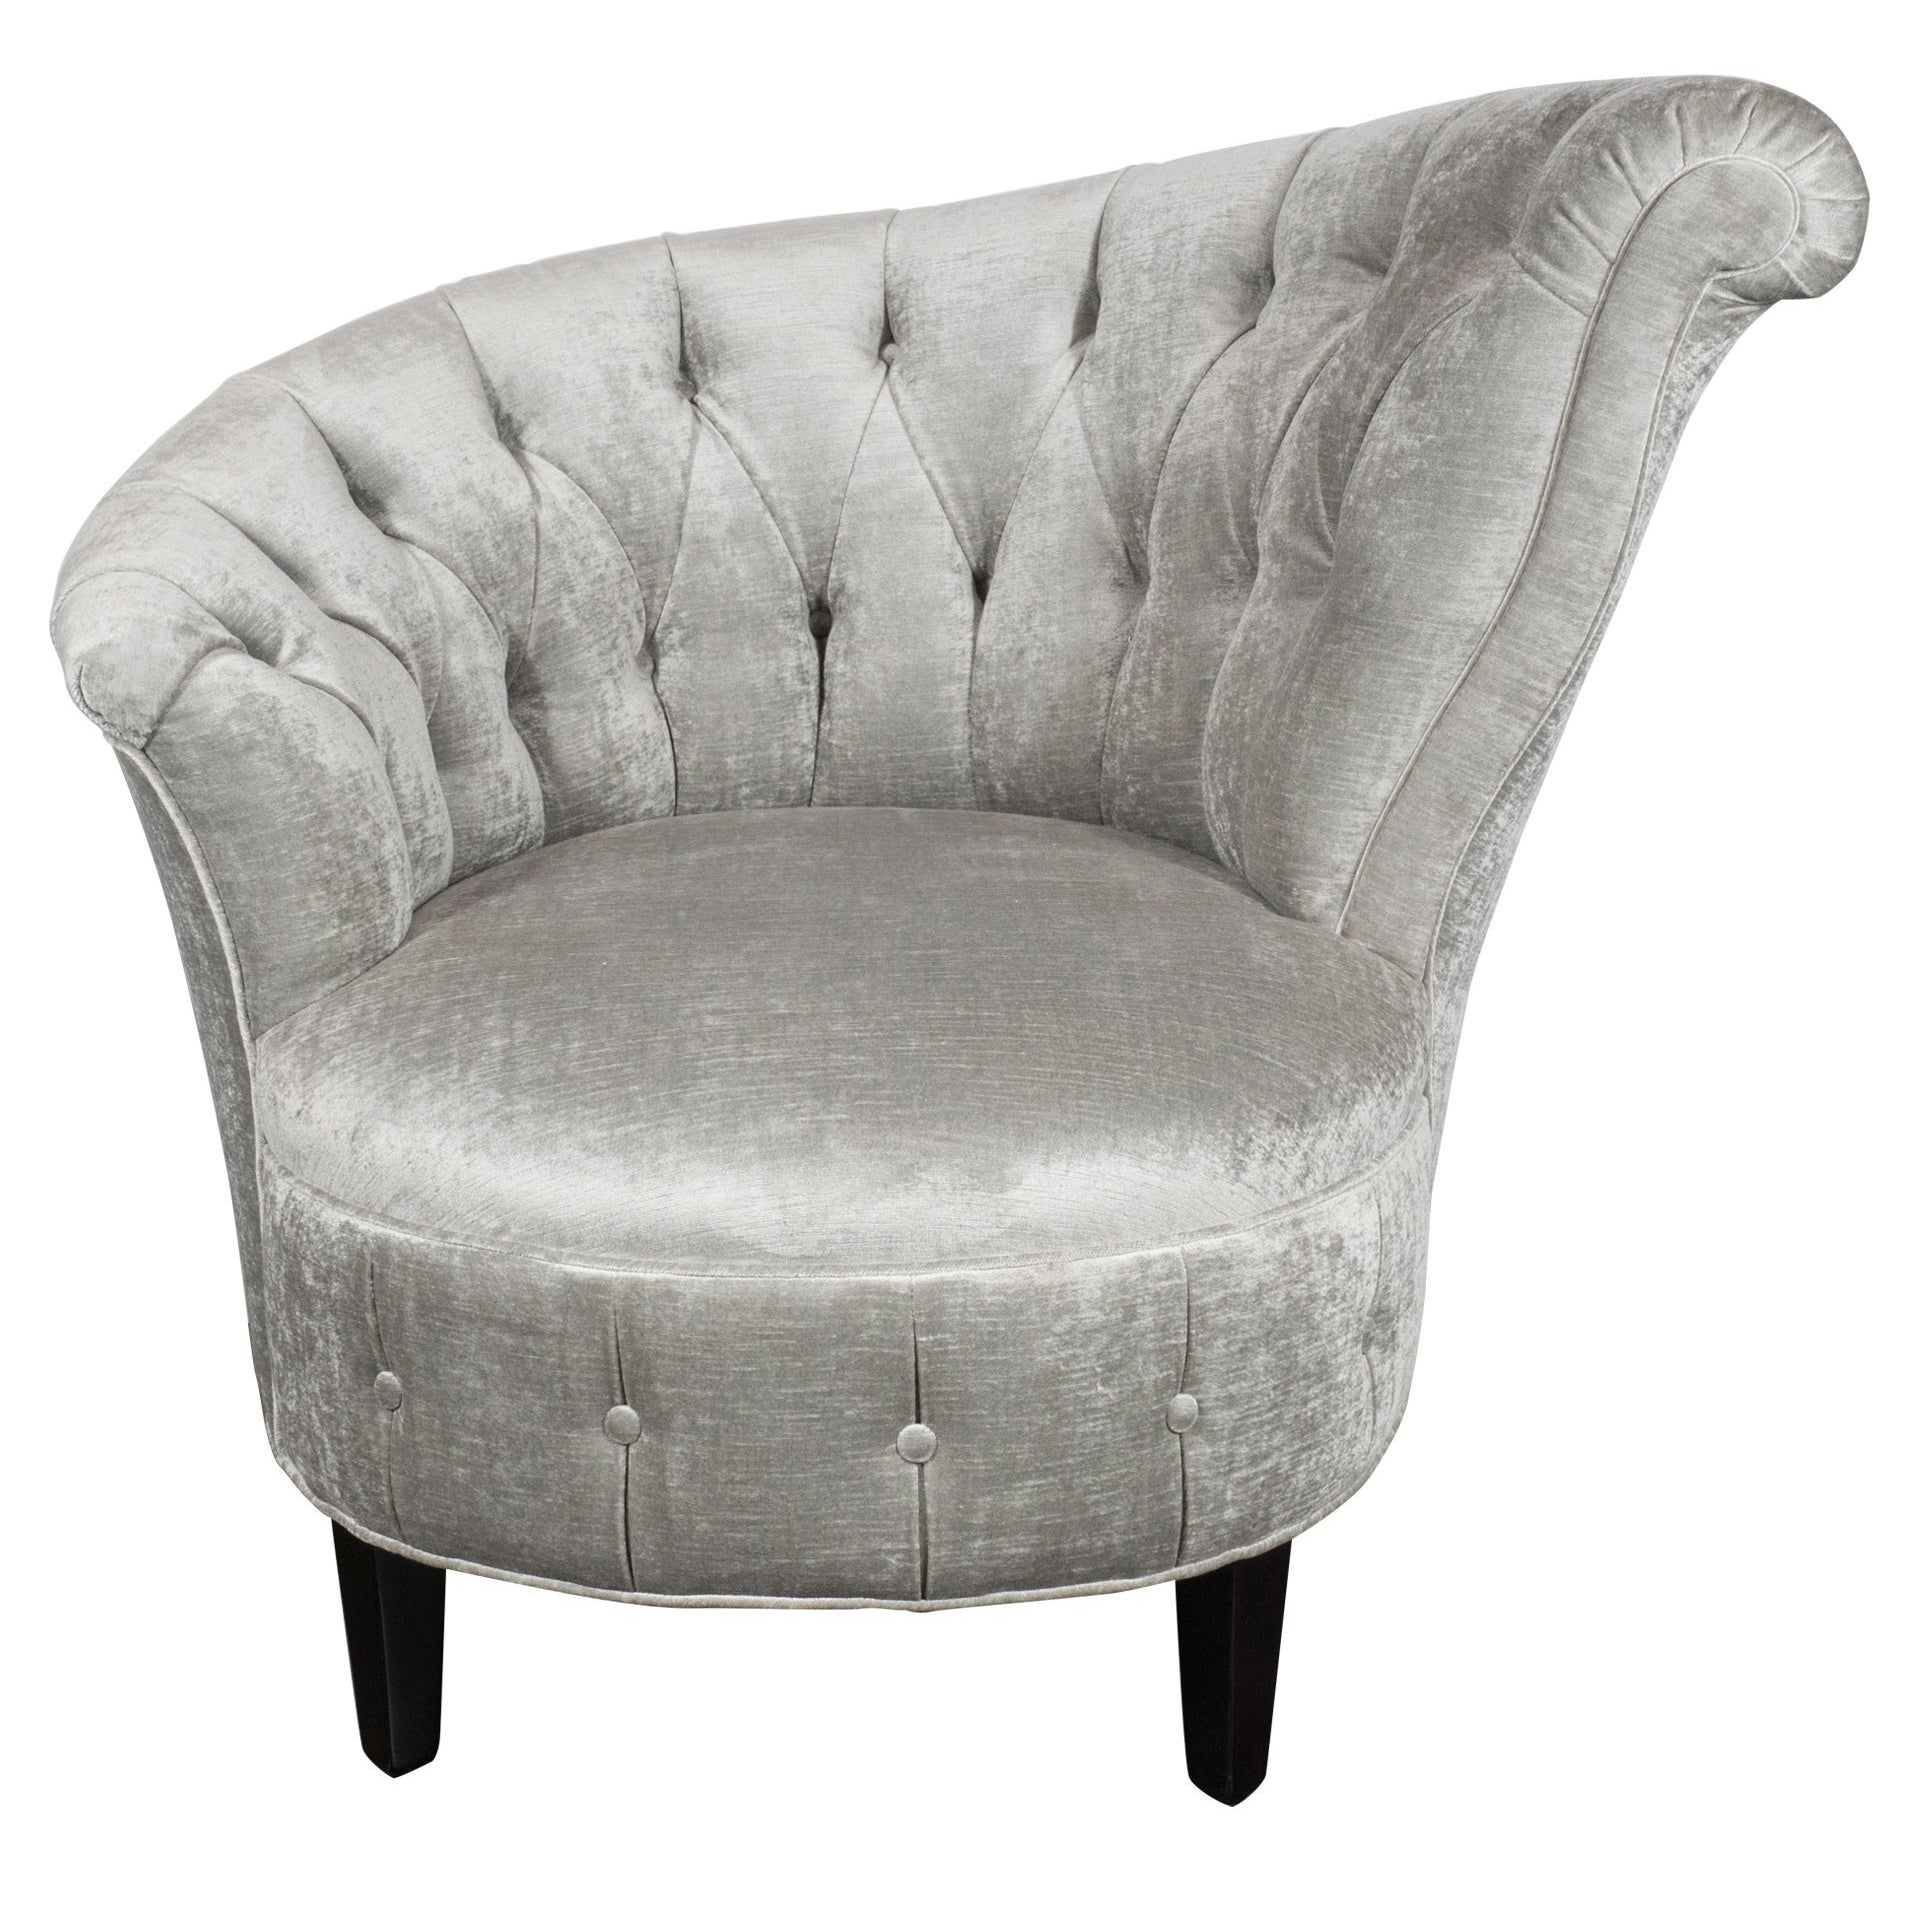 Hollywood Sessel 1940s Hollywood Regency Asymmetrical Tufted Chair In Platinum Velvet